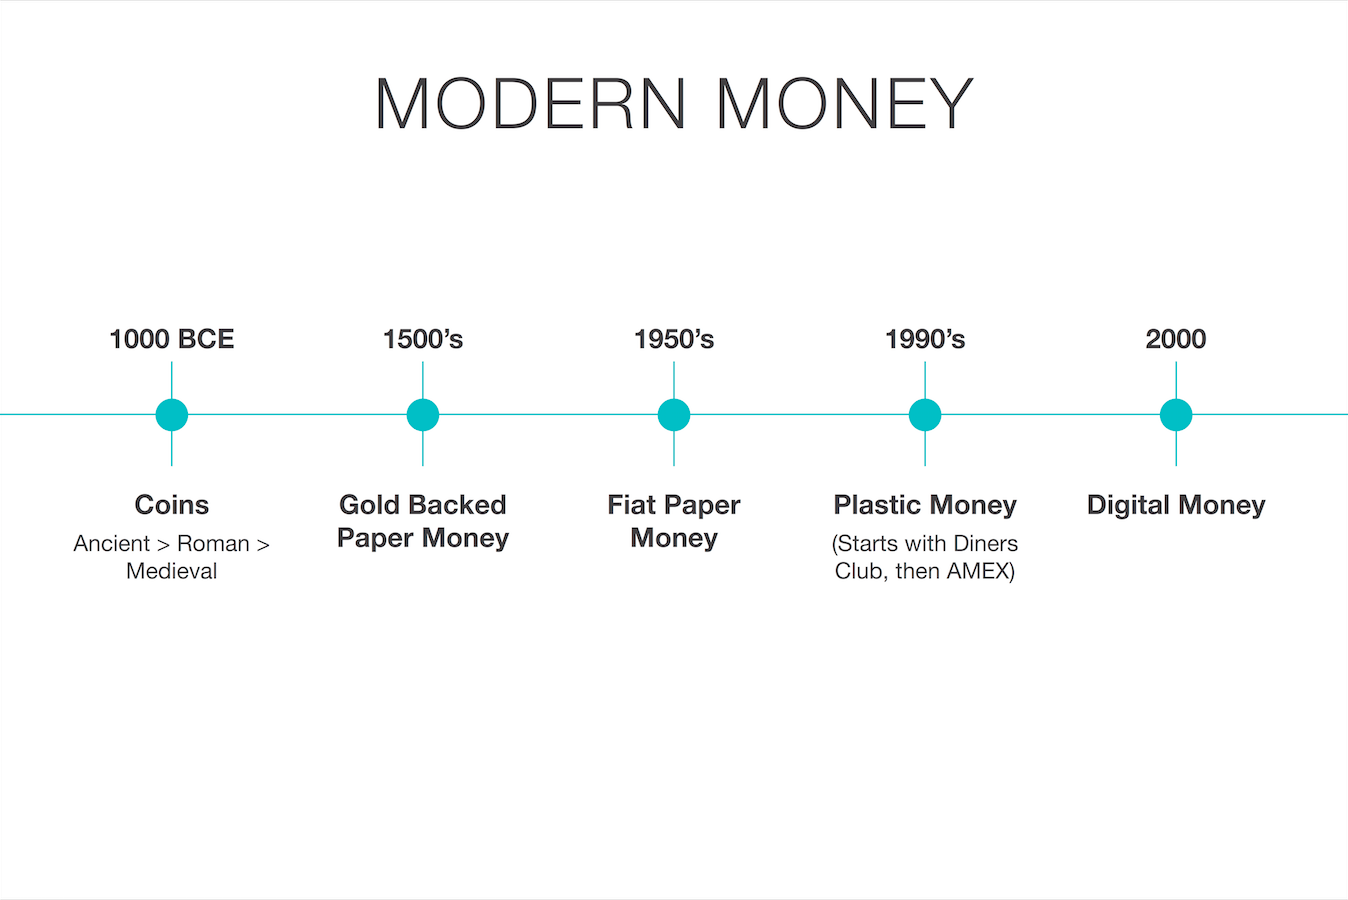 Homo Sapiens Evolution Money Bitcoin Hacker Noon Related Image With Current Electricity Notes This Was The Defining Model In And Amongst Periods Of Gold Standards Etc For 500yrs Until Promissory Transformed Into Our Era Fiat